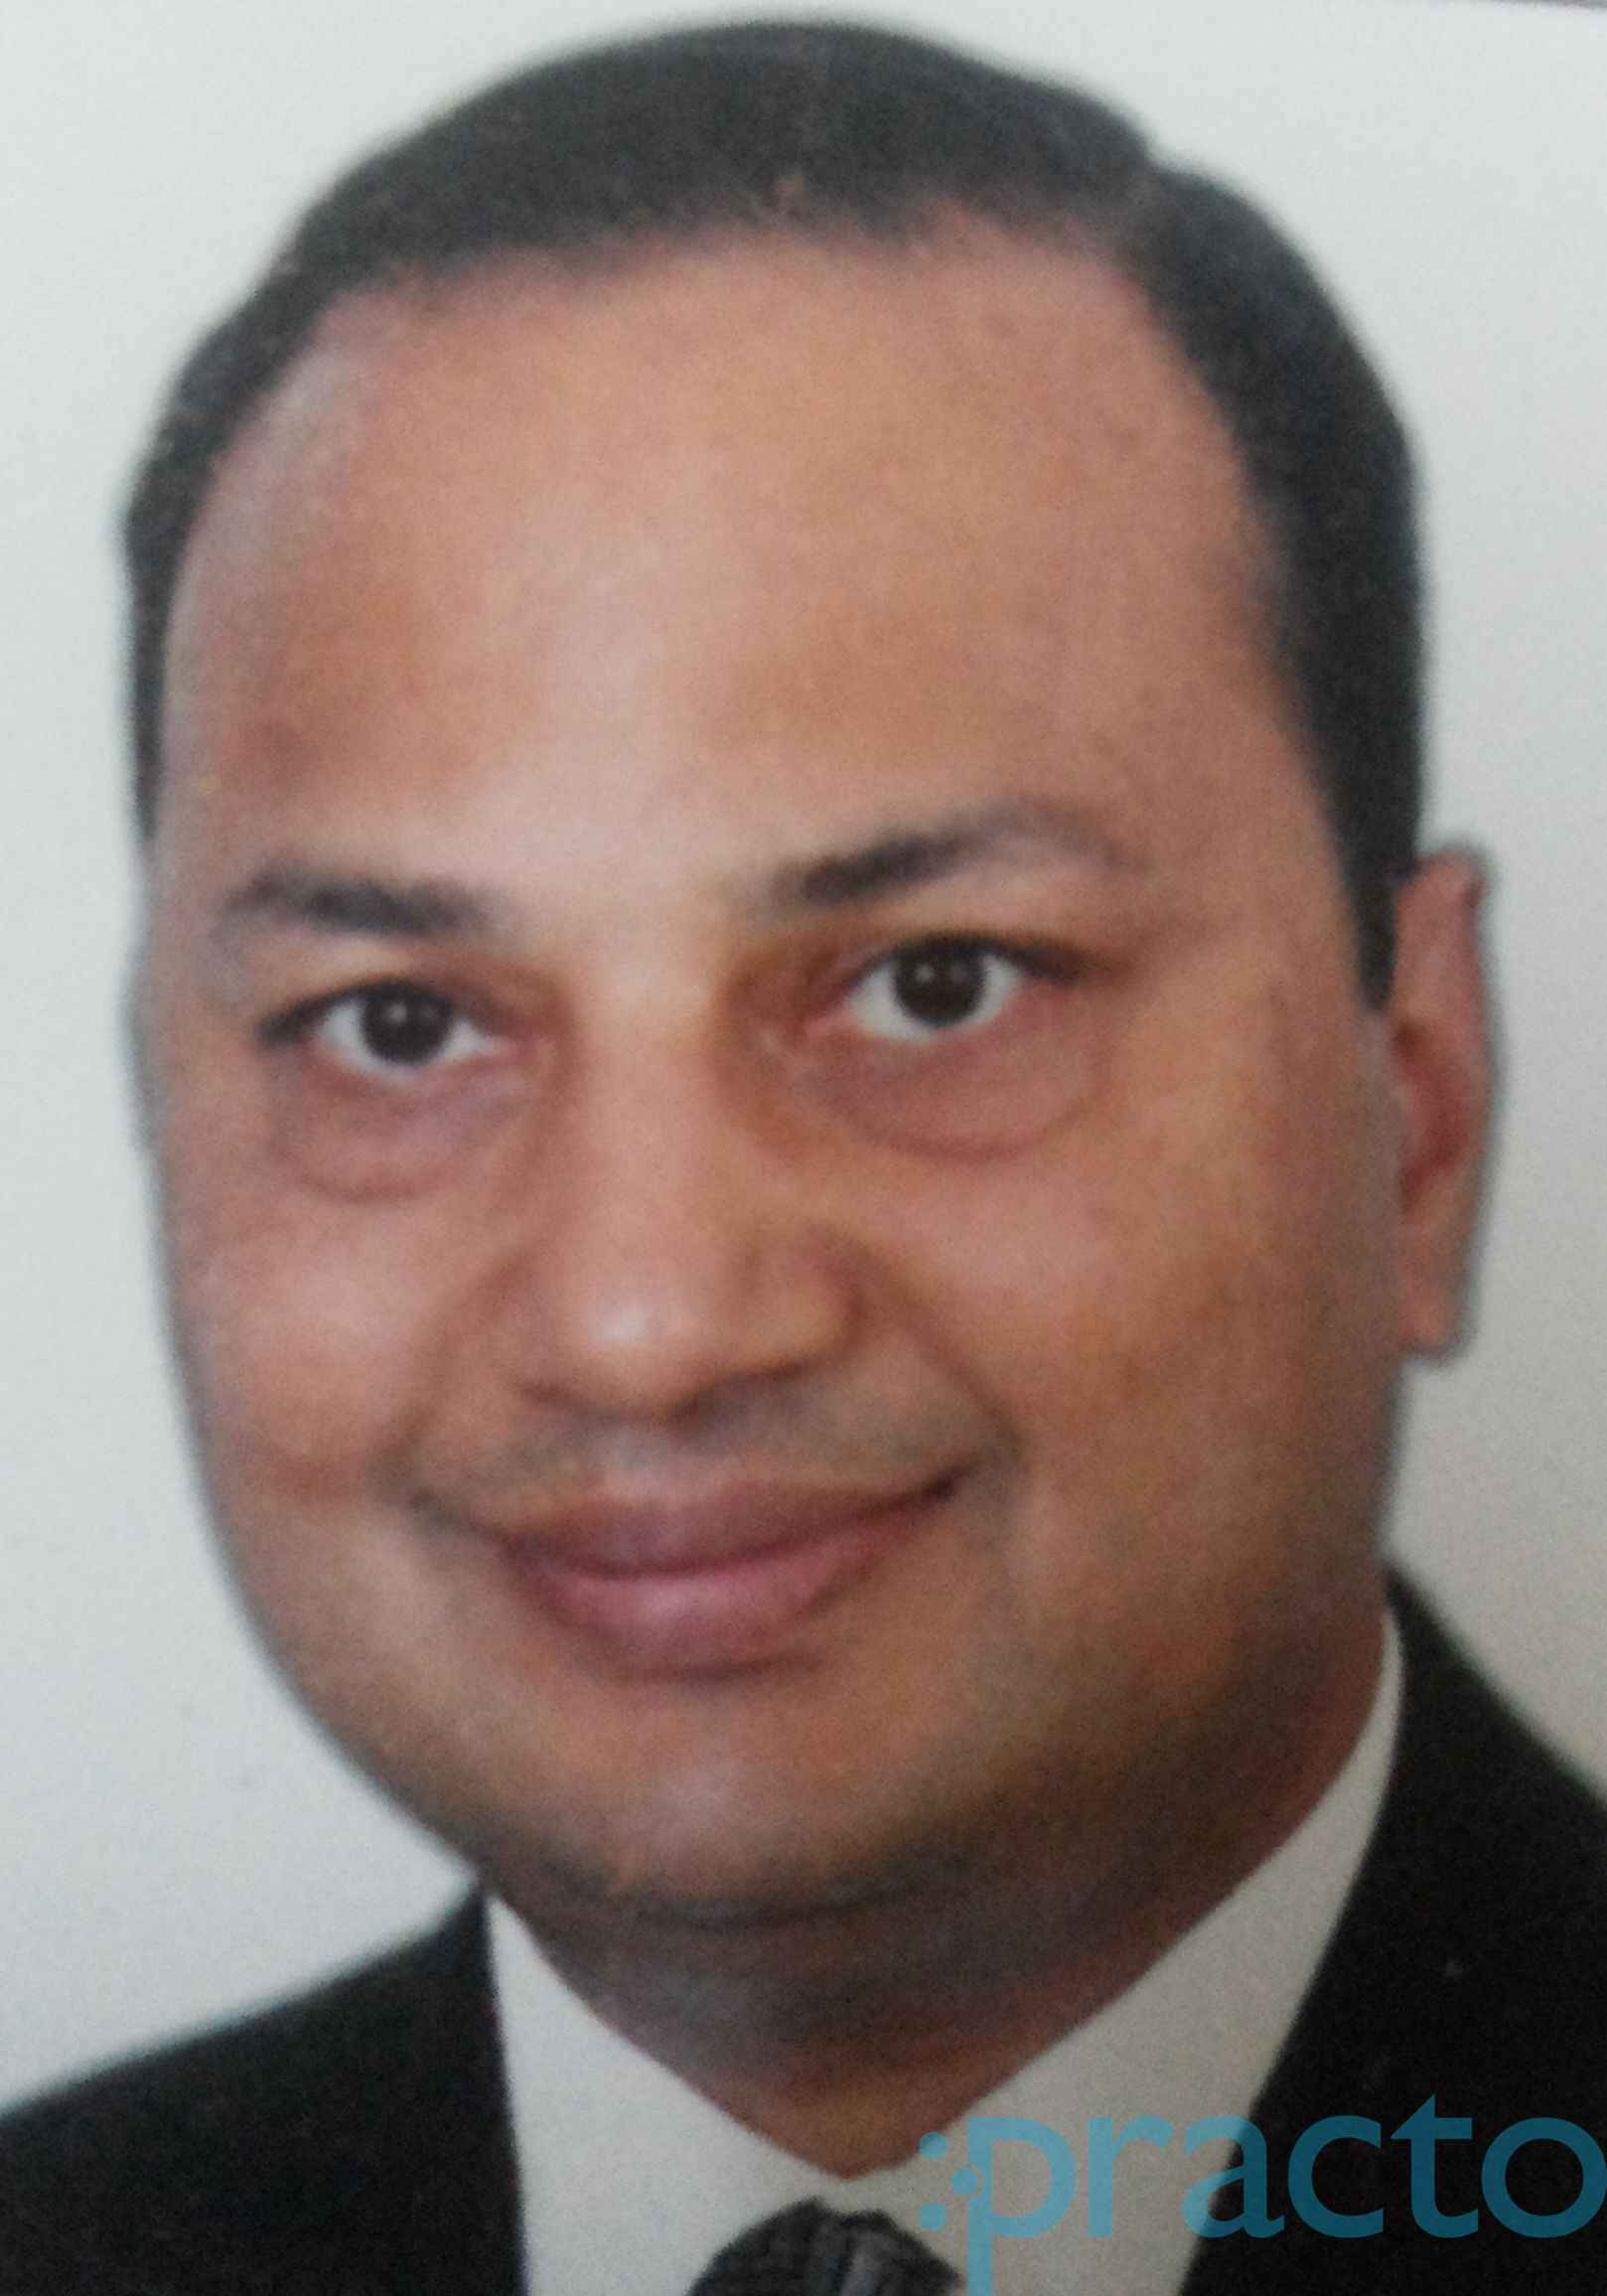 Dr. Vivek Agarwal - Orthopedist